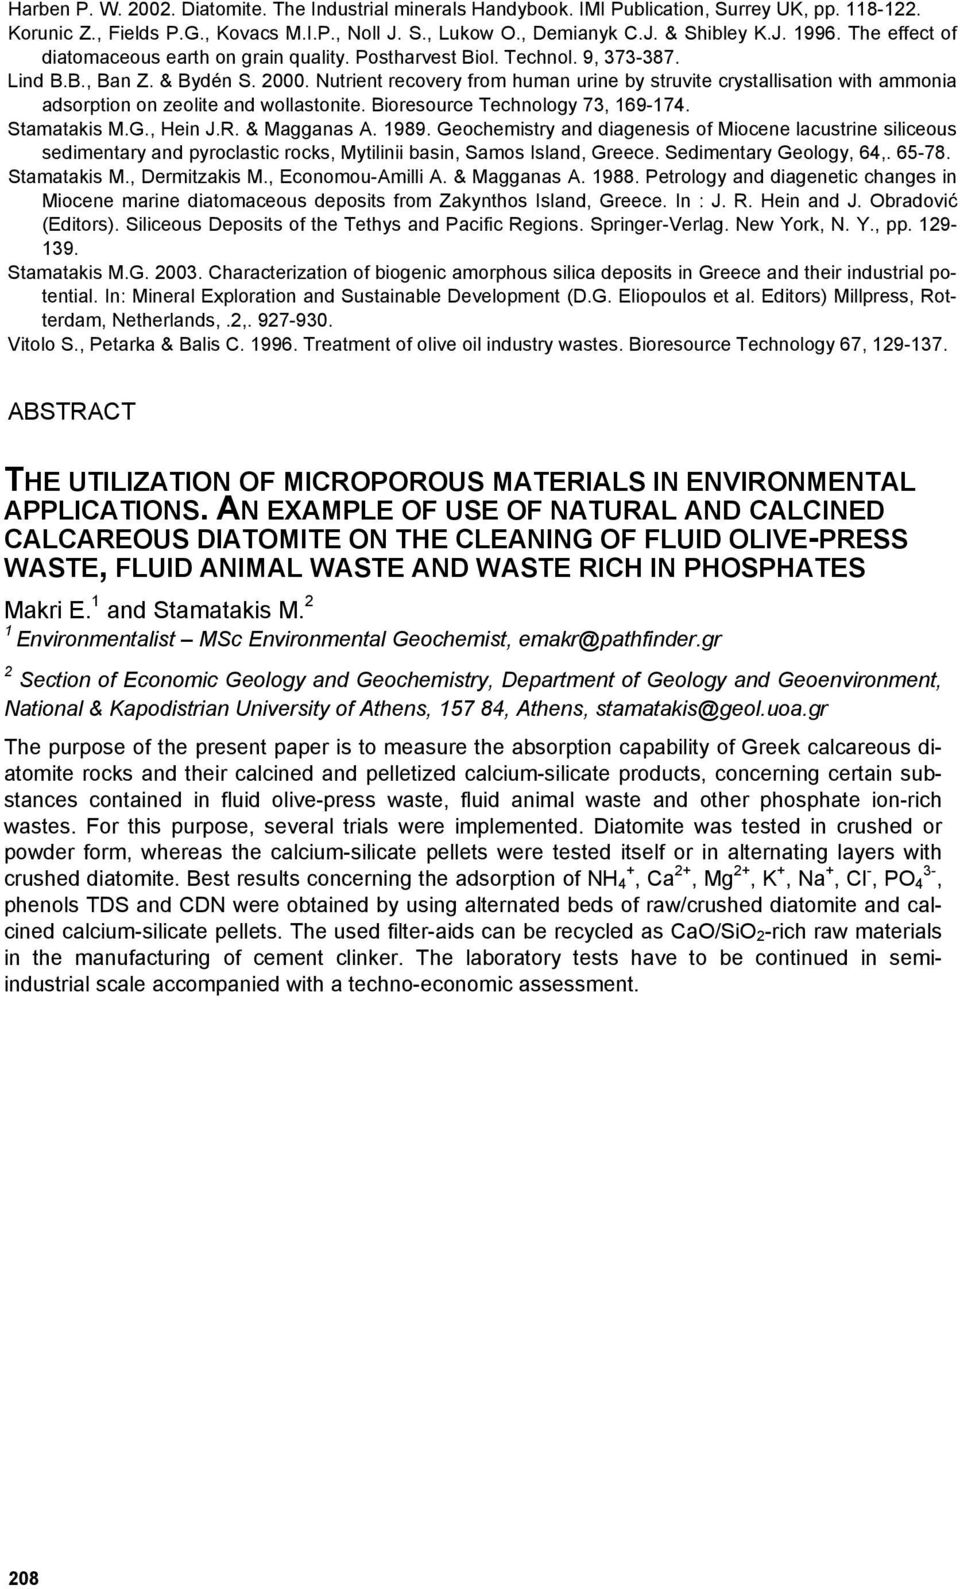 Nutrient recovery from human urine by struvite crystallisation with ammonia adsorption on zeolite and wollastonite. Bioresource Technology 73, 169-174. Stamatakis M.G., Hein J.R. & Magganas Α. 1989.